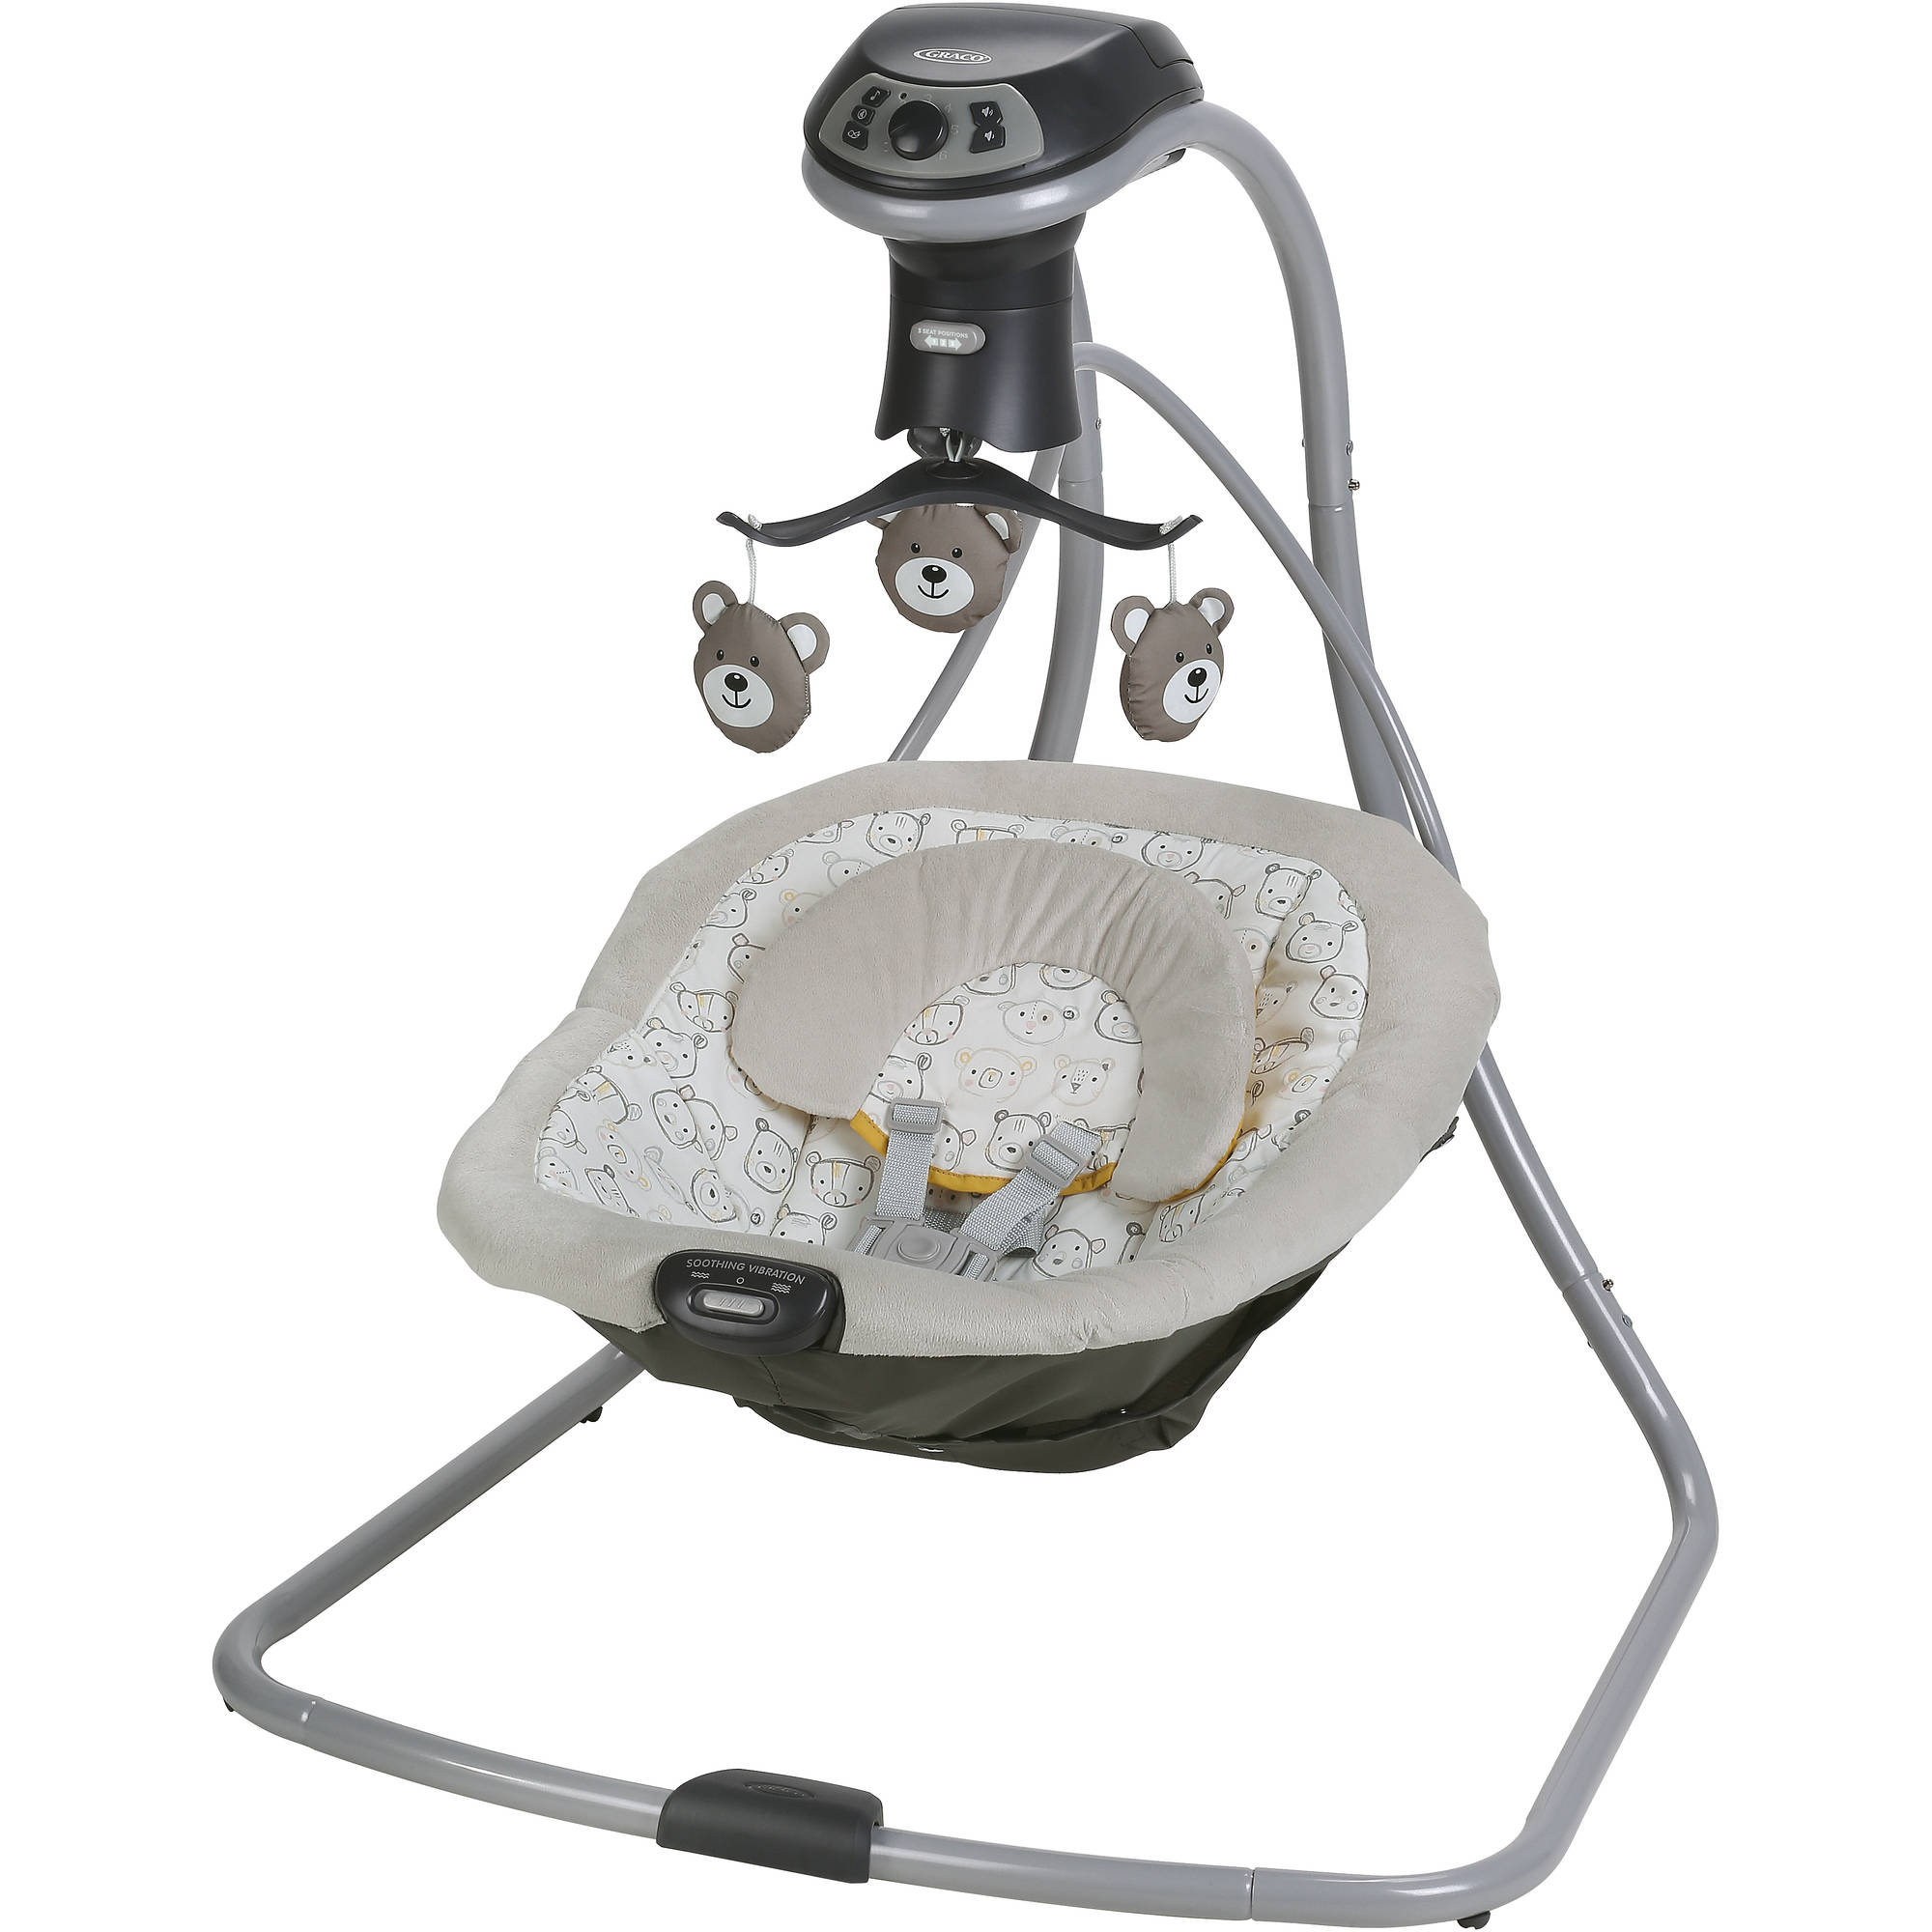 Graco Simple Sway LX with Multi-Direction Baby Swing, Teddy by Graco